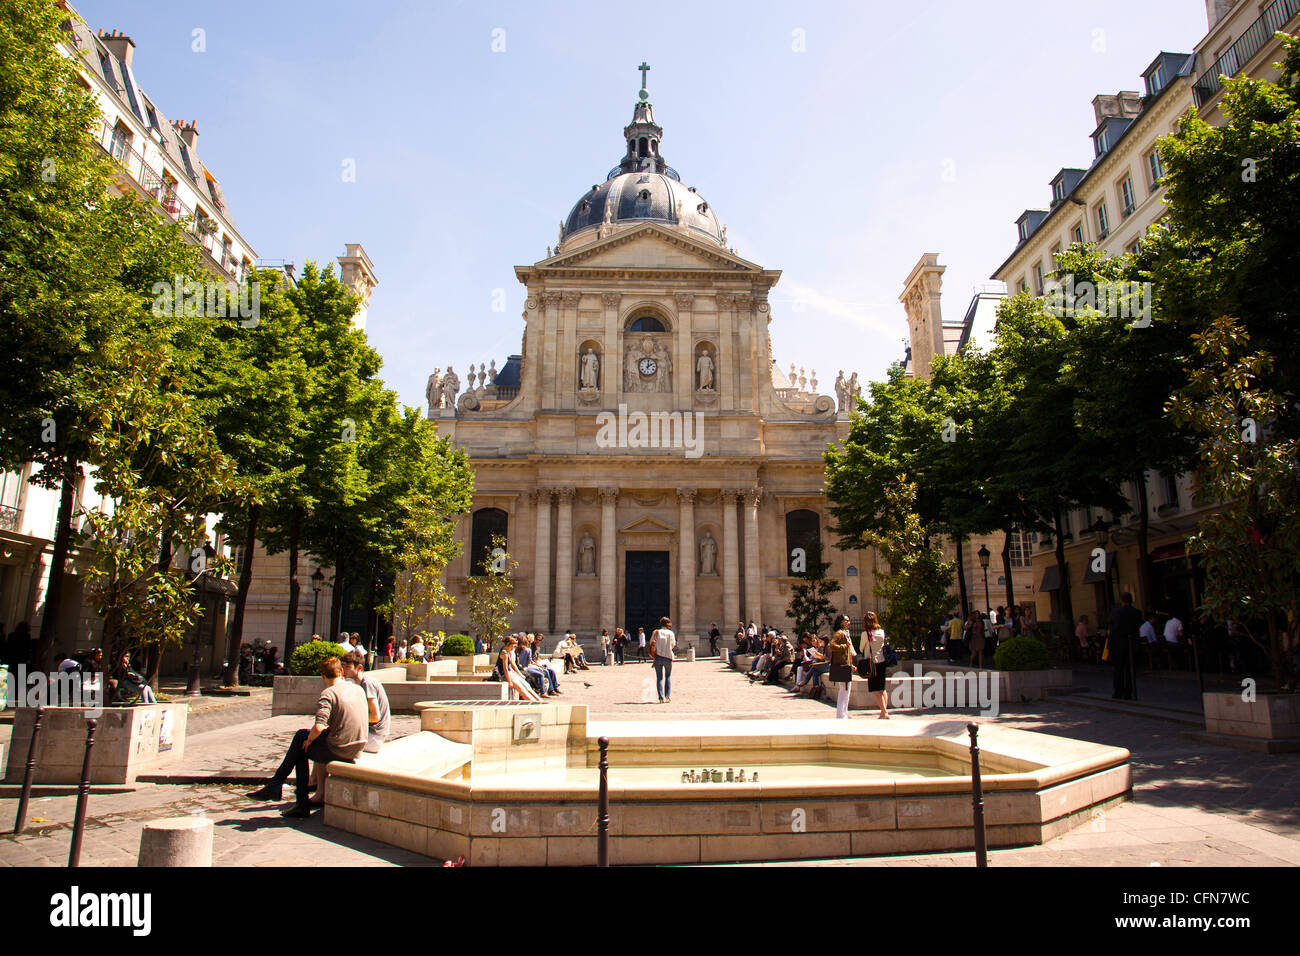 The Sorbonne in Paris France - Stock Image